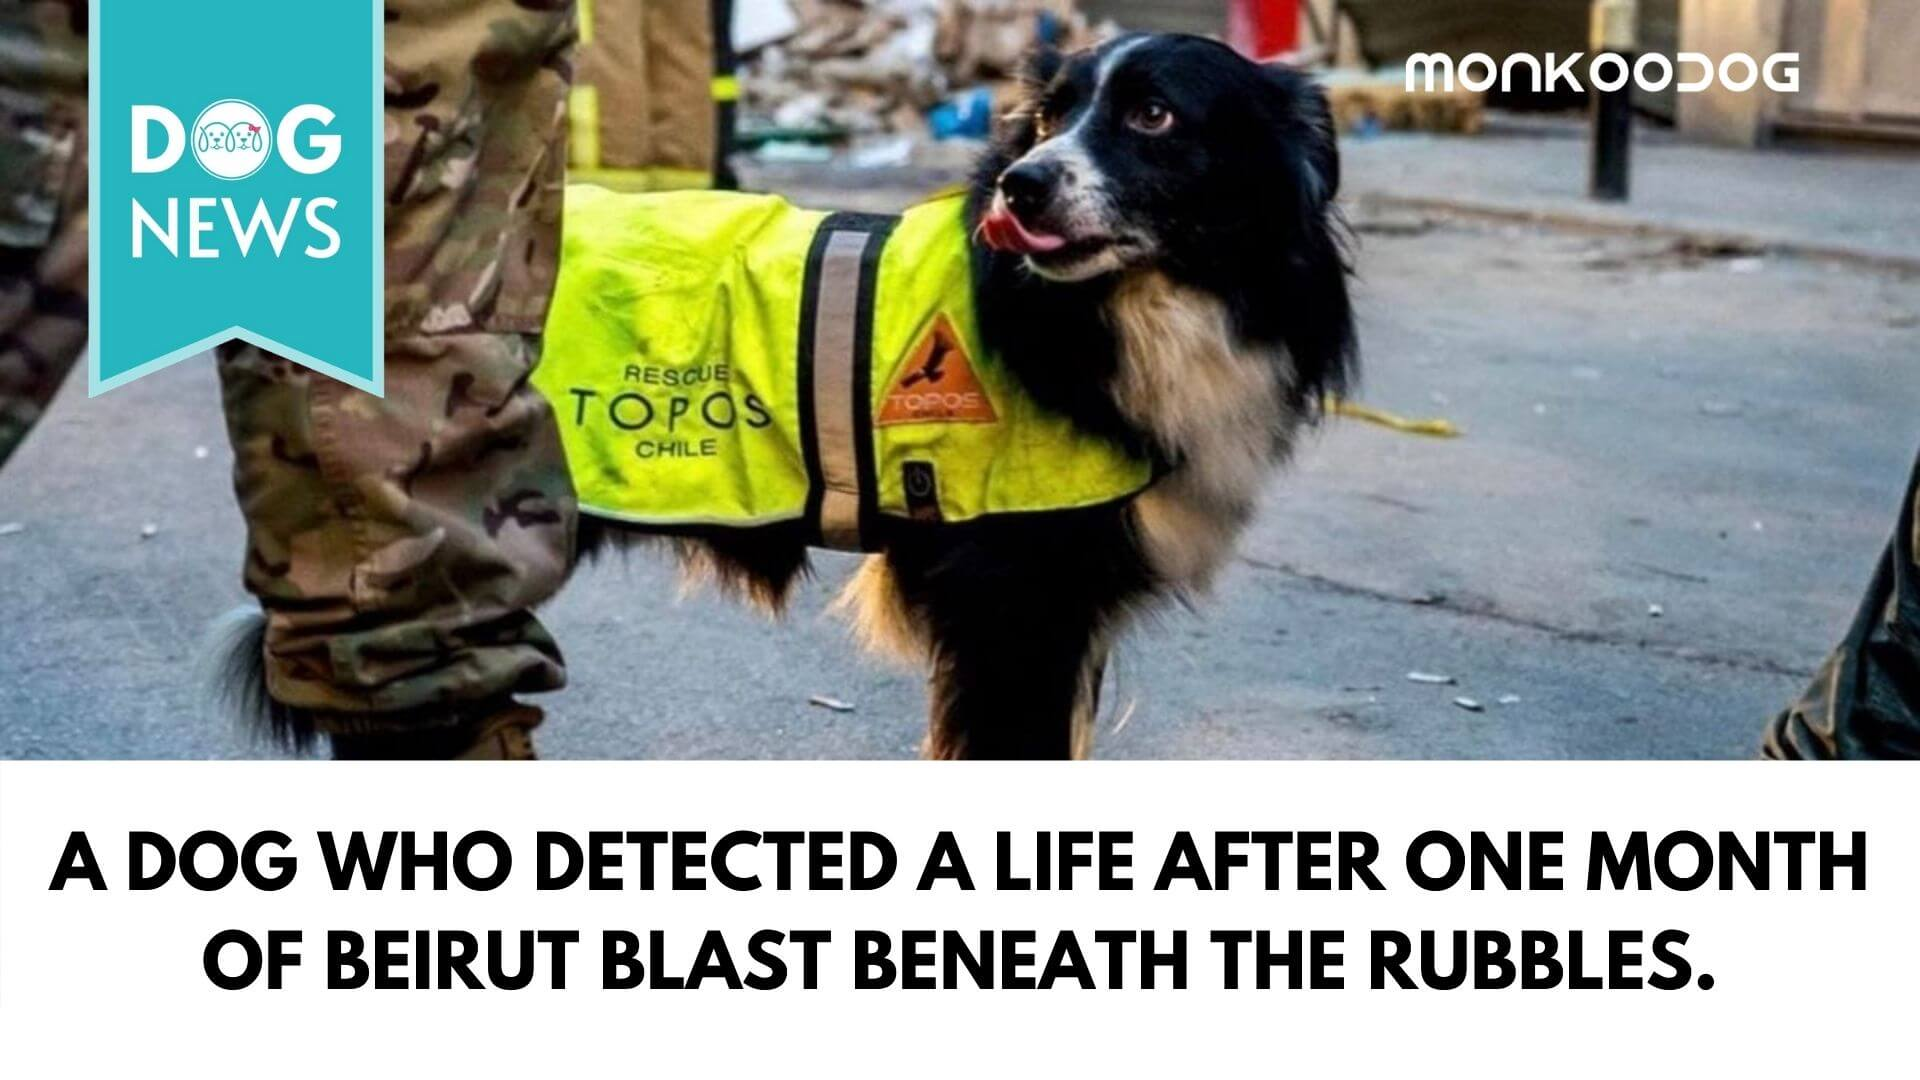 A Dog who detected a life after one month of beirut blast beneath the rubbles.